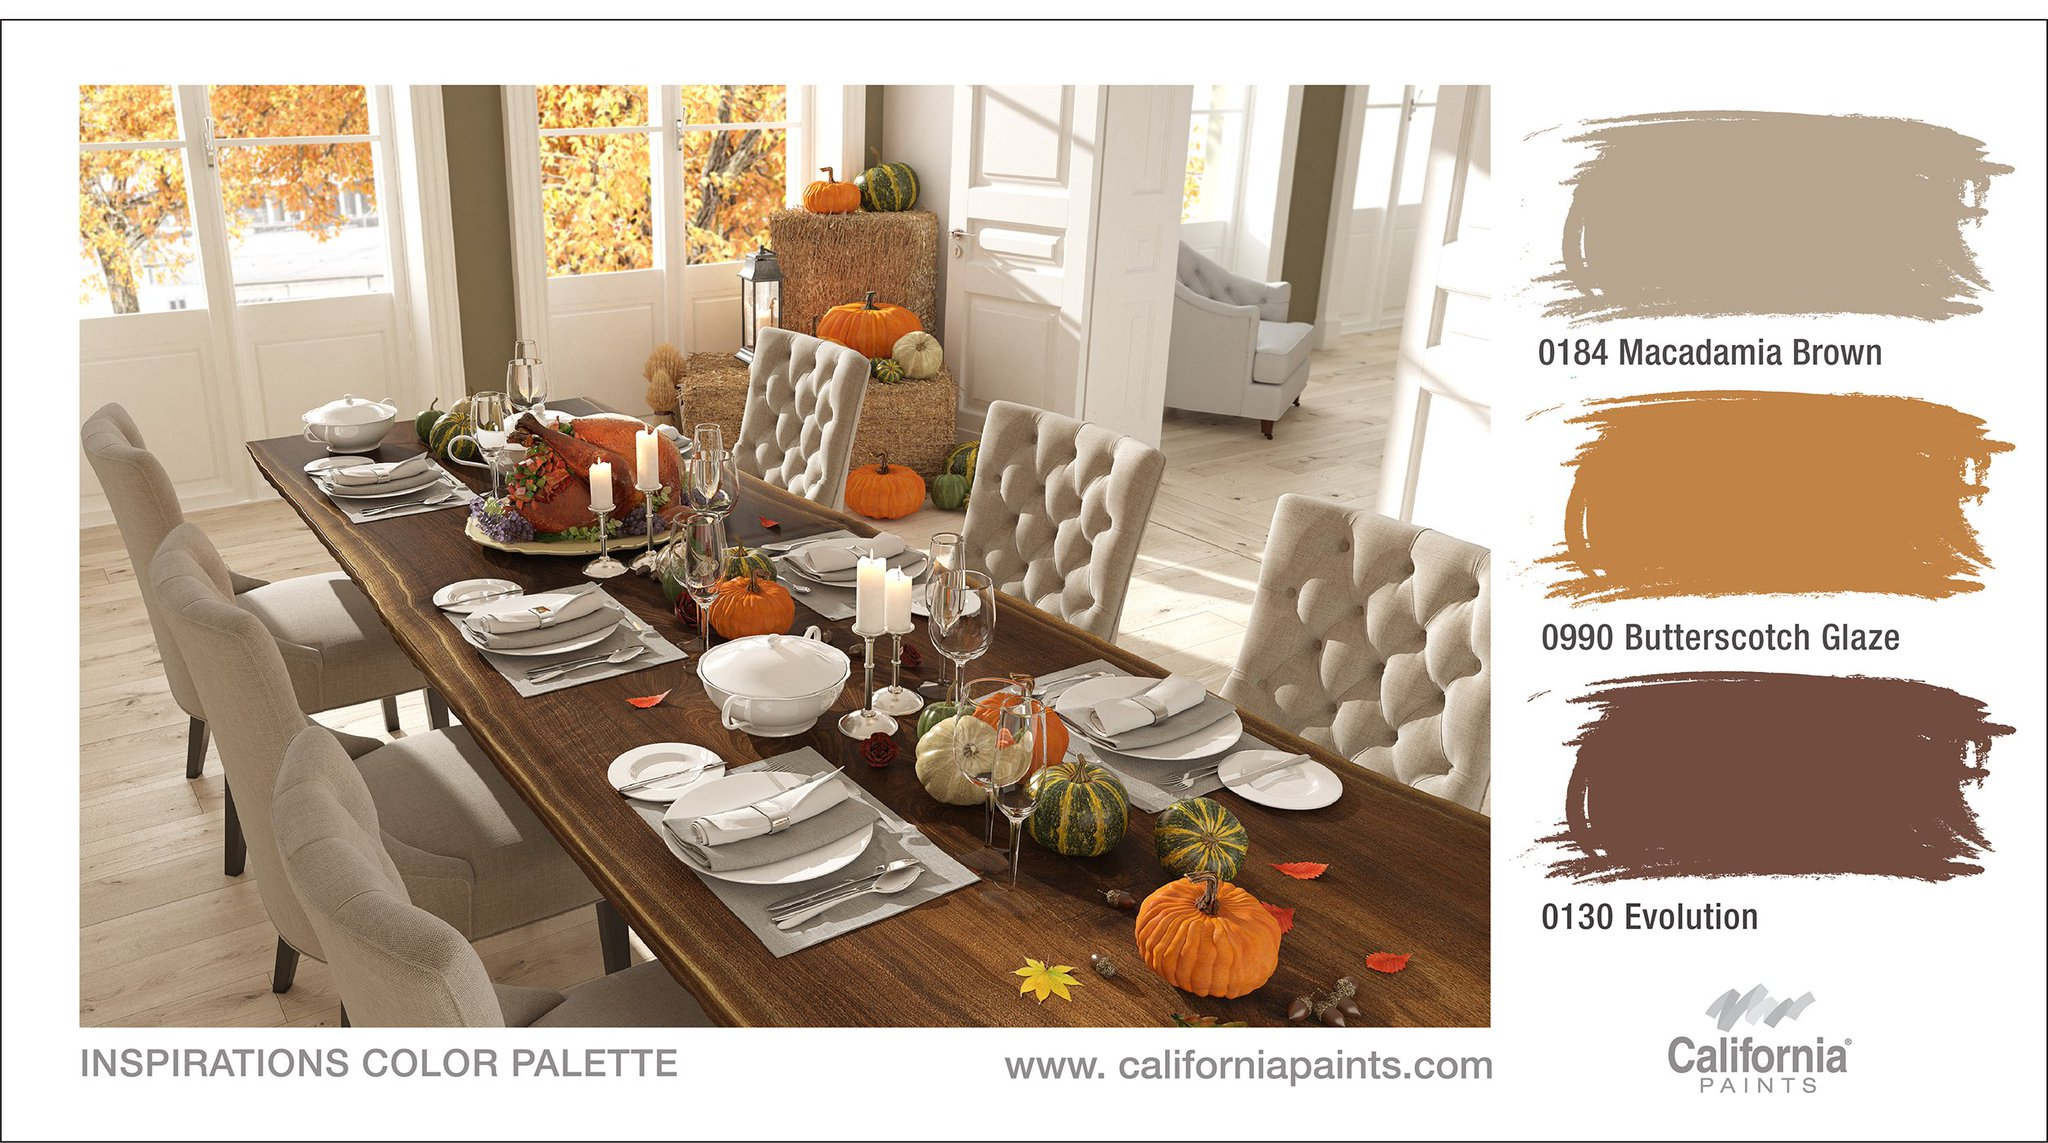 Icp Building Solutions Group On Twitter From Our Table To Yours Happy Thanksgiving Californiapaints Inspirations 0184 Macadamia Brown 0990 Butterscotch Glaze 0130 Evolution Https T Co R4yqhuoc0e